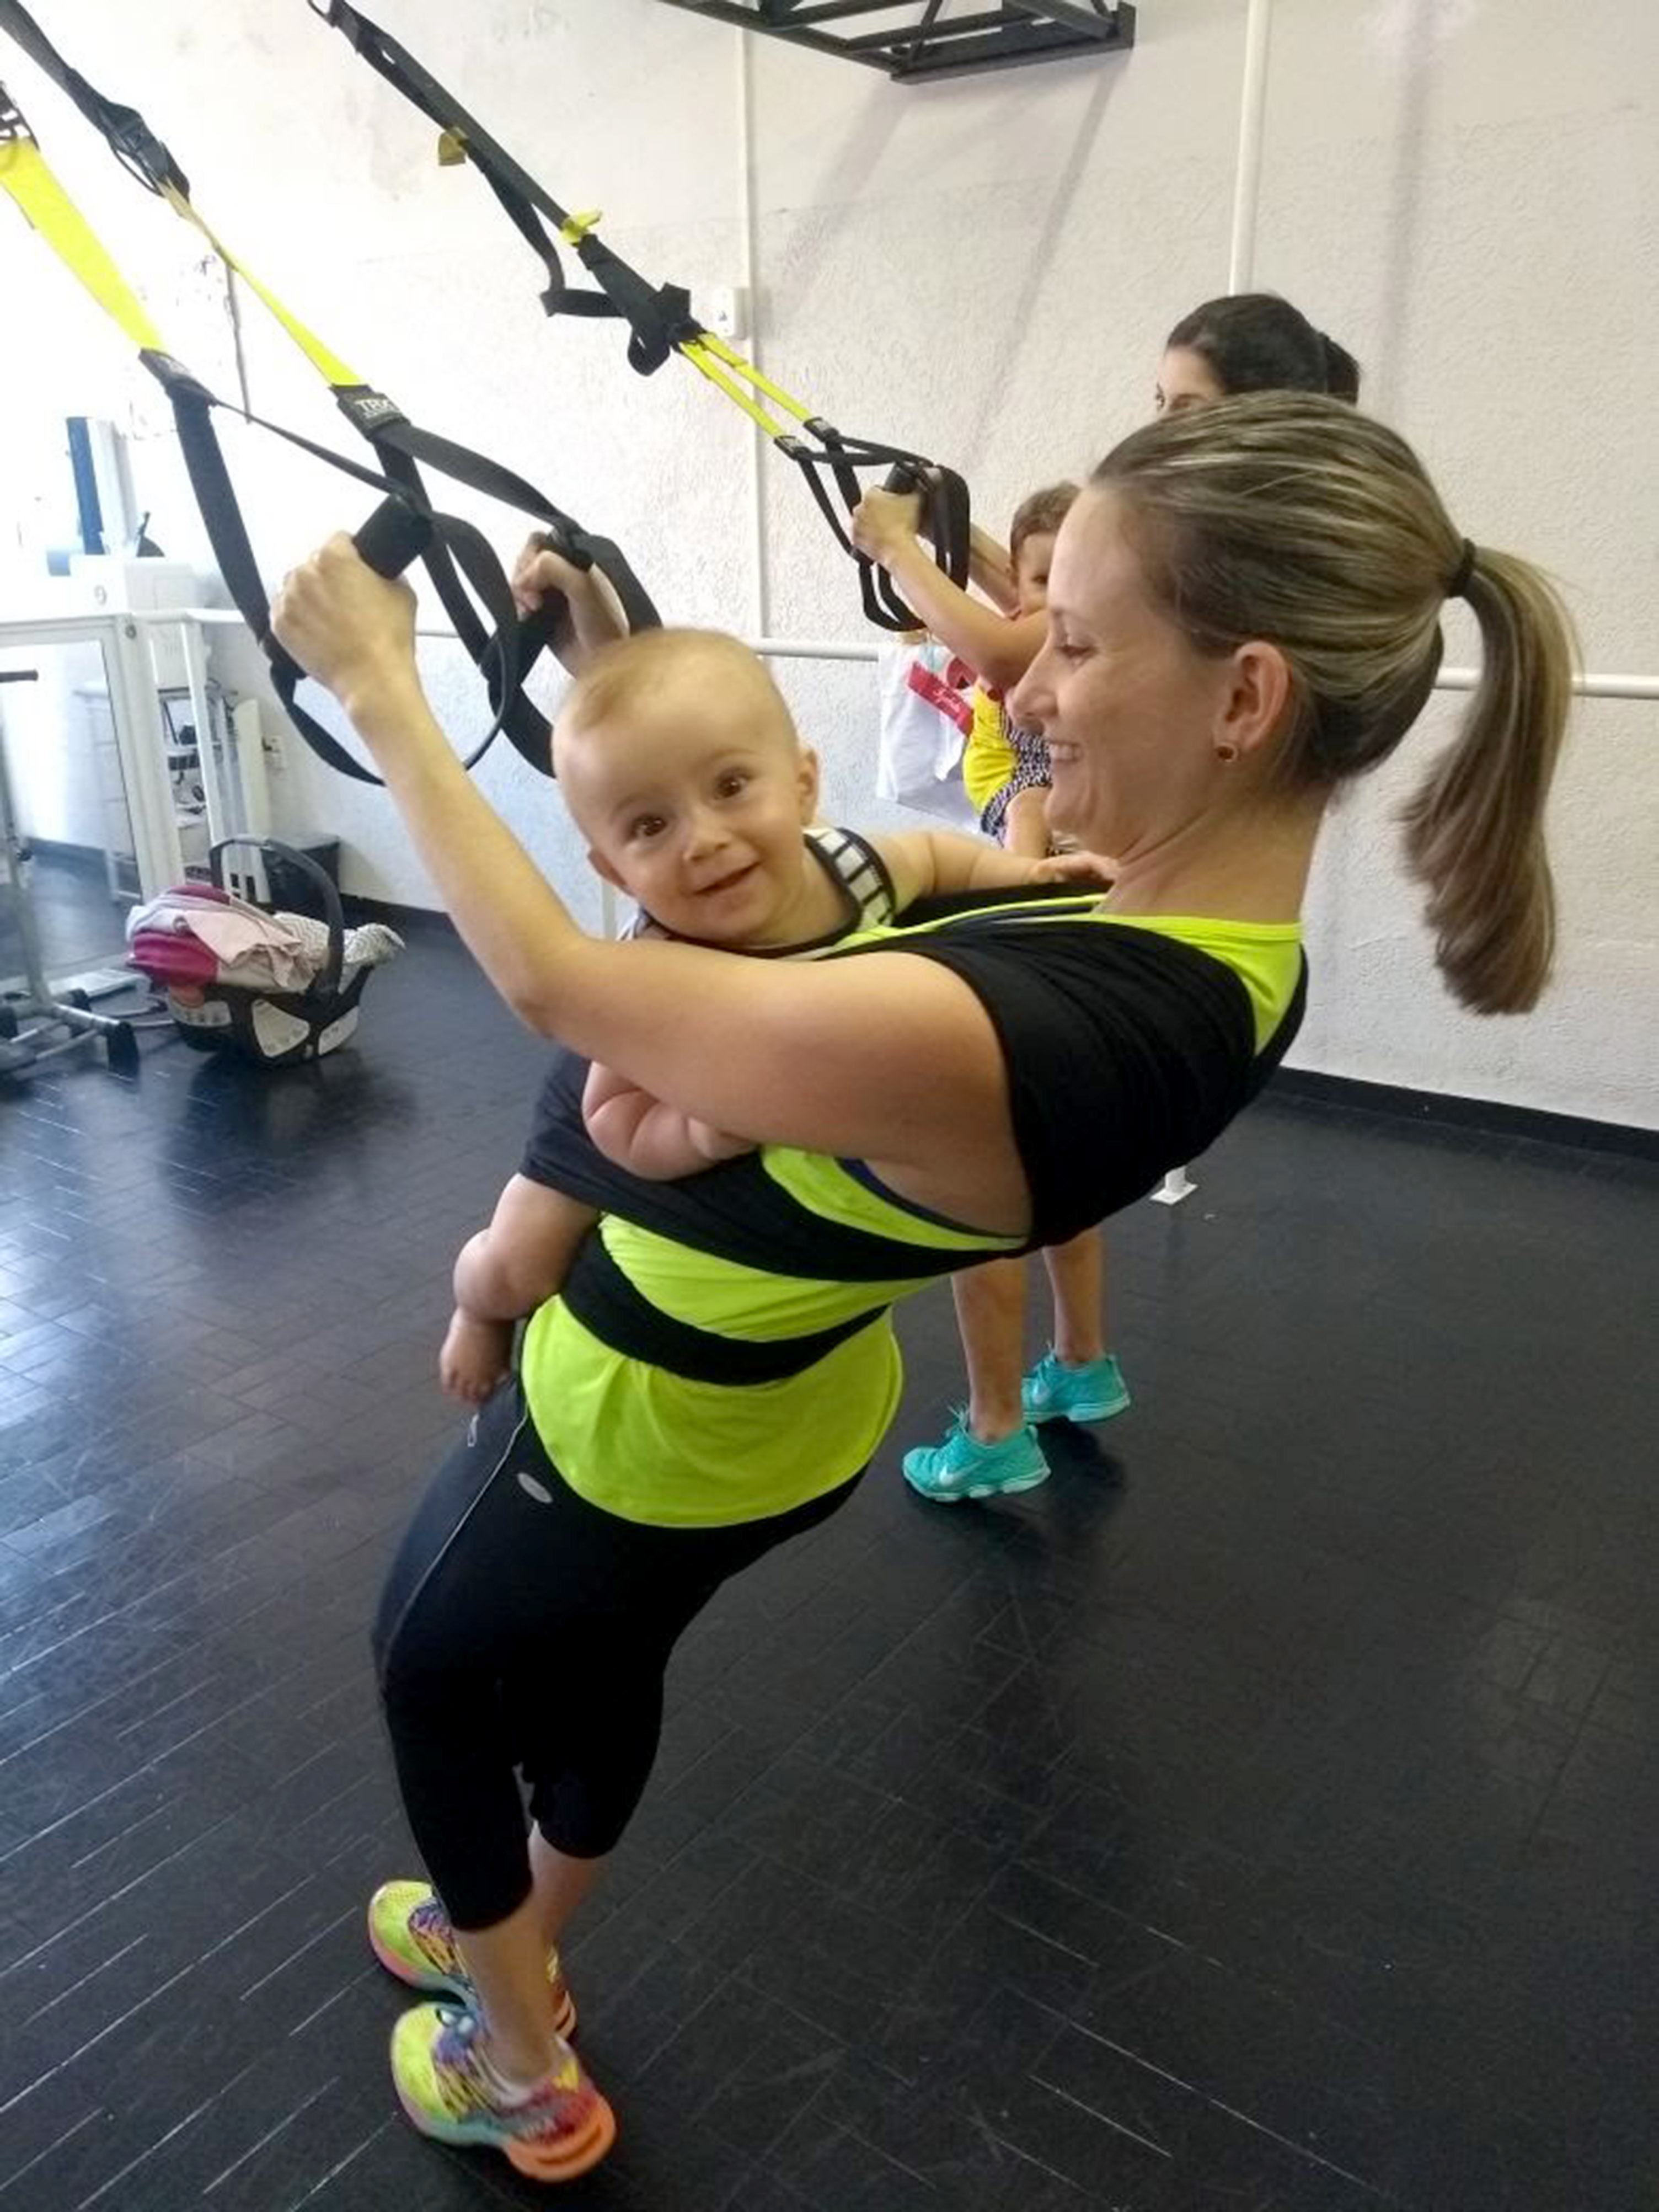 Gym babies add weight to mums' exercises - Caters News Agency